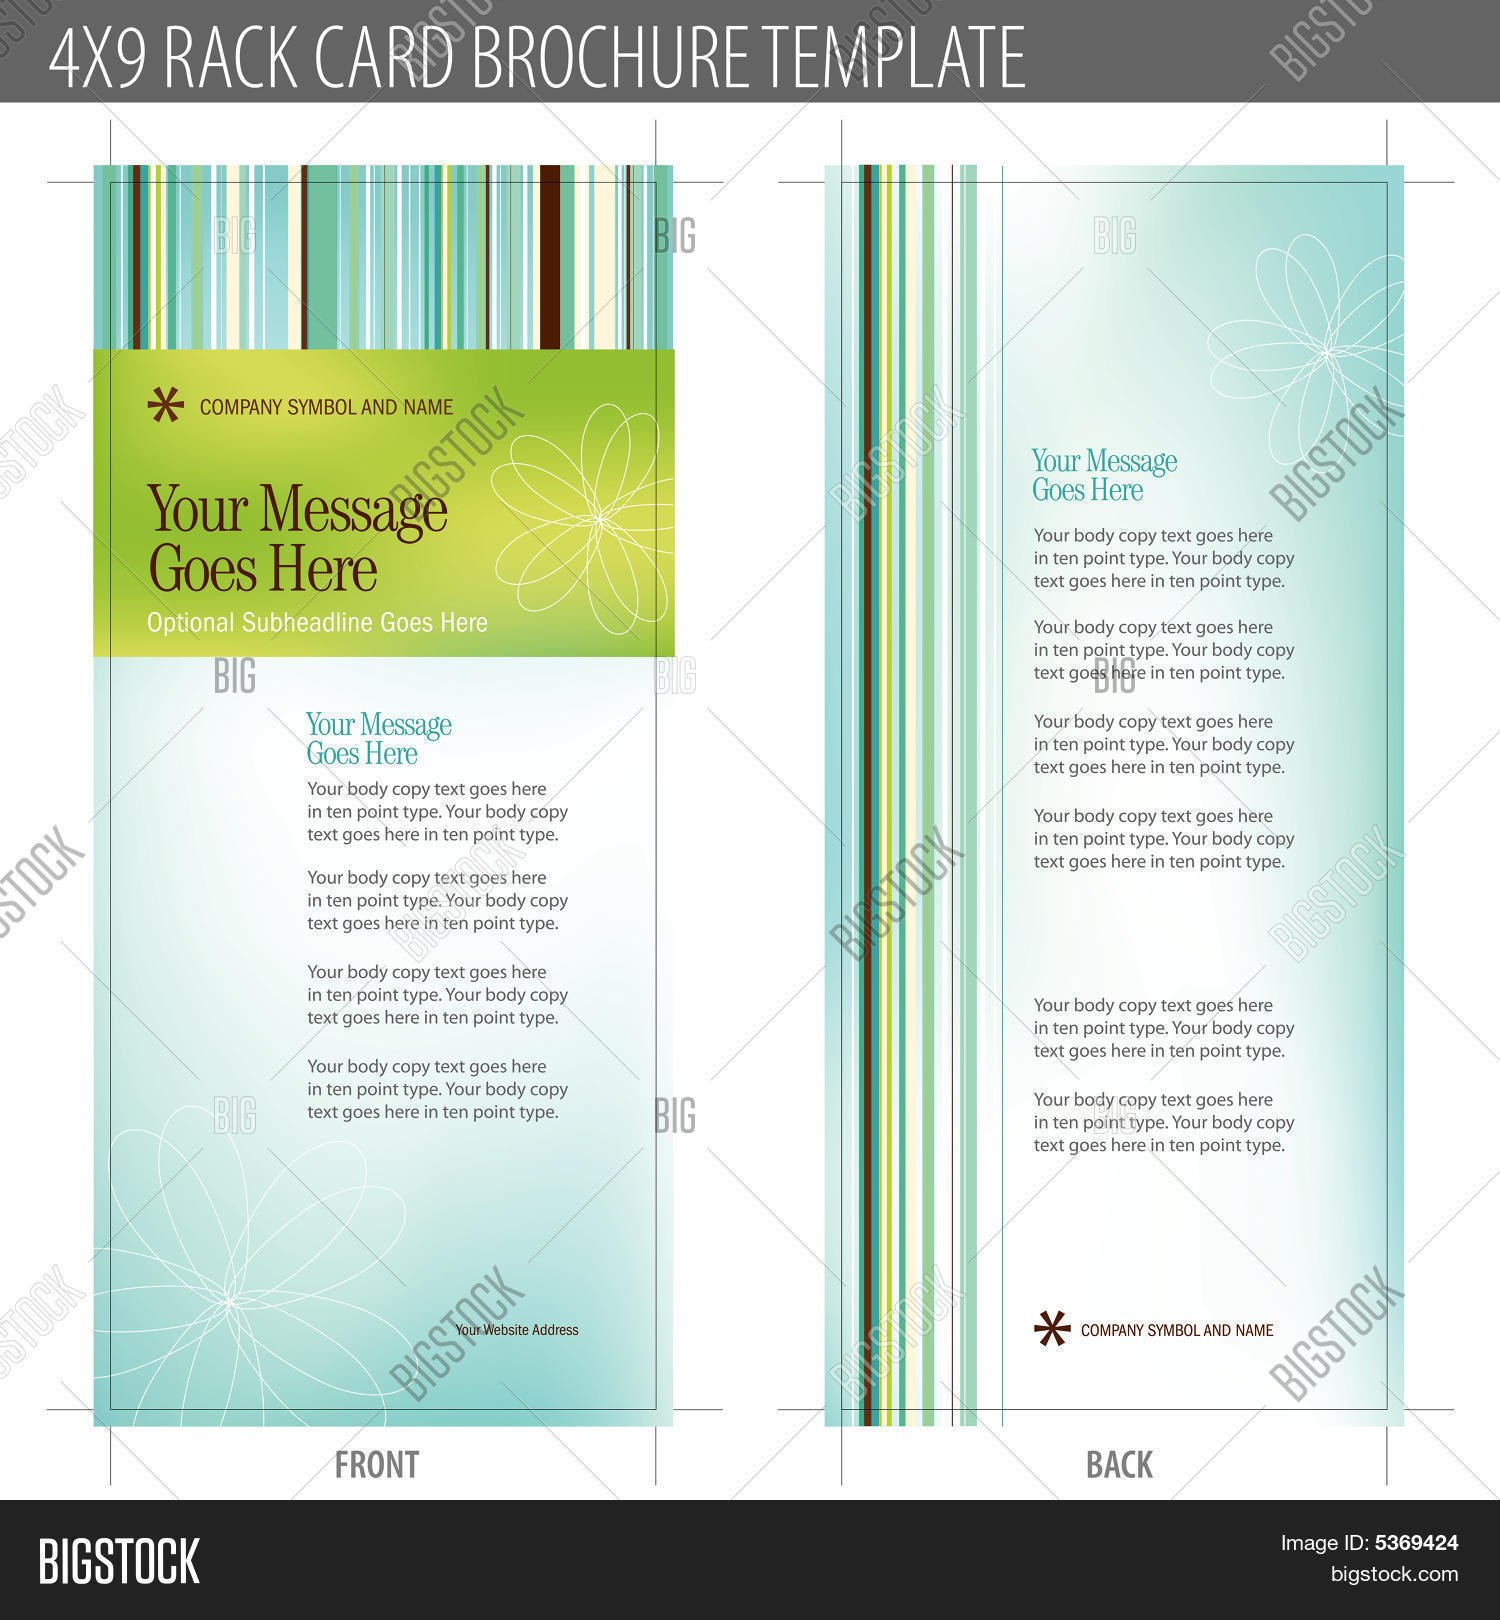 Free Rack Card Template Sensational Ideas Illustrator Photoshop Pertaining To Free Rack Card Template Word